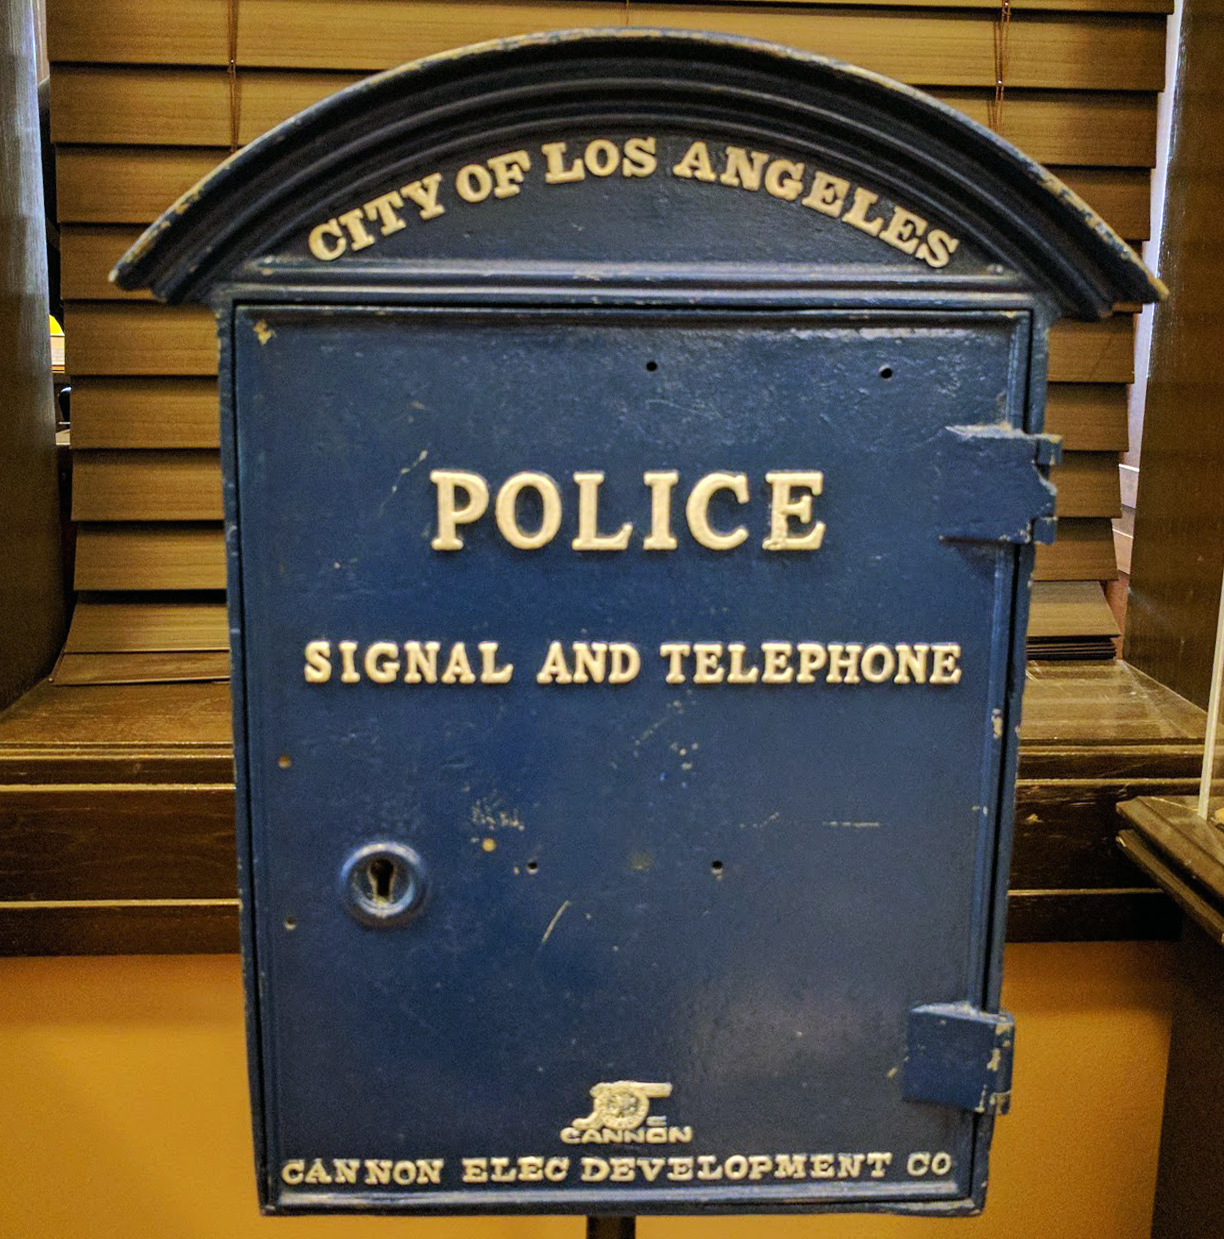 LAPD museum phone box michele roohani